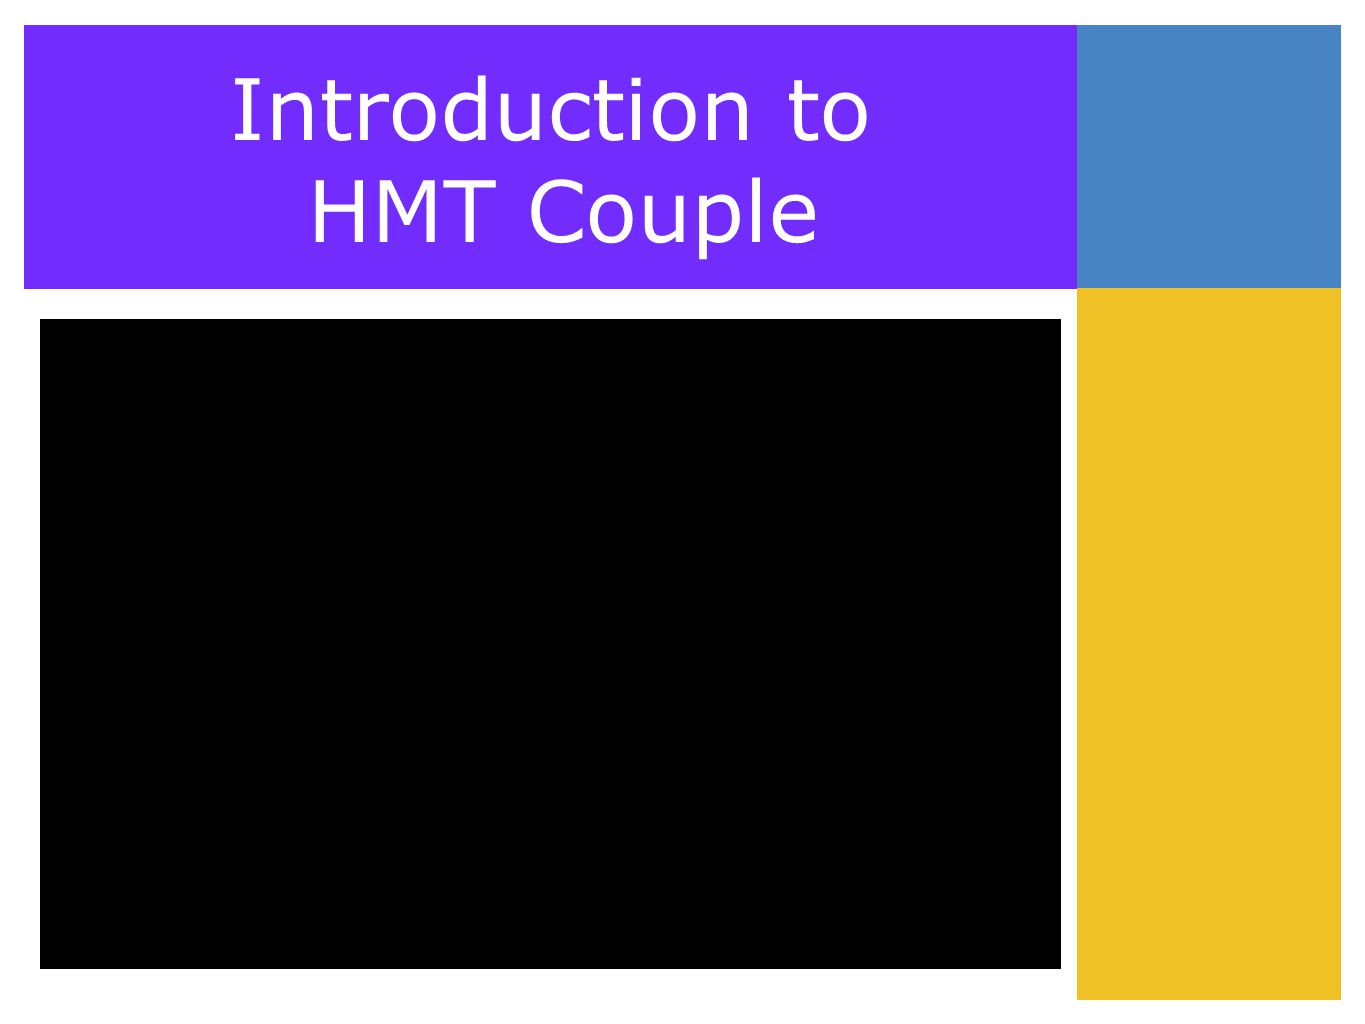 Introduction to HMT Couple